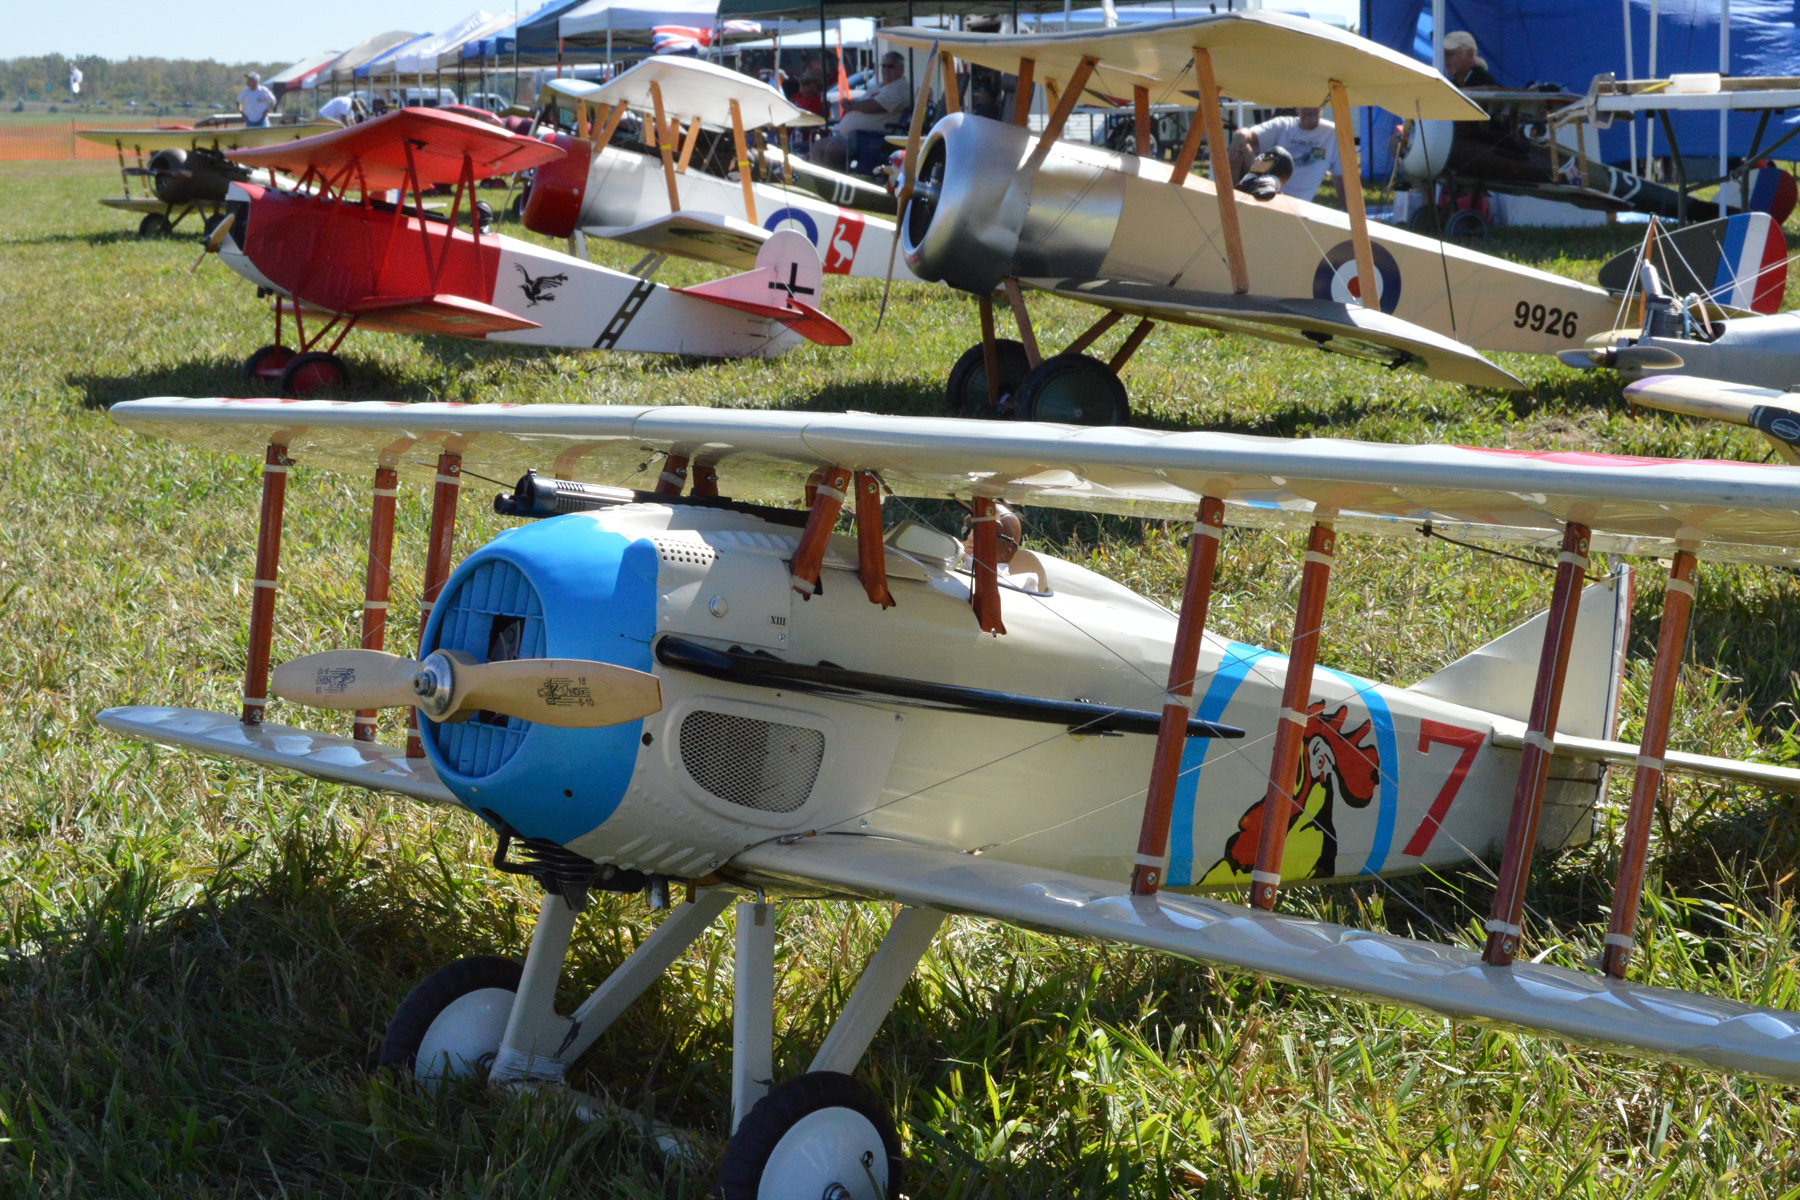 WWI-era radio-controlled model aircraft, some as large as 1/2-scale, will perform during the WWI Dawn Patrol Rendezvous, Oct. 1-2, 2016, at the National Museum of the U.S. Air Force. (U.S. Air Force photo)